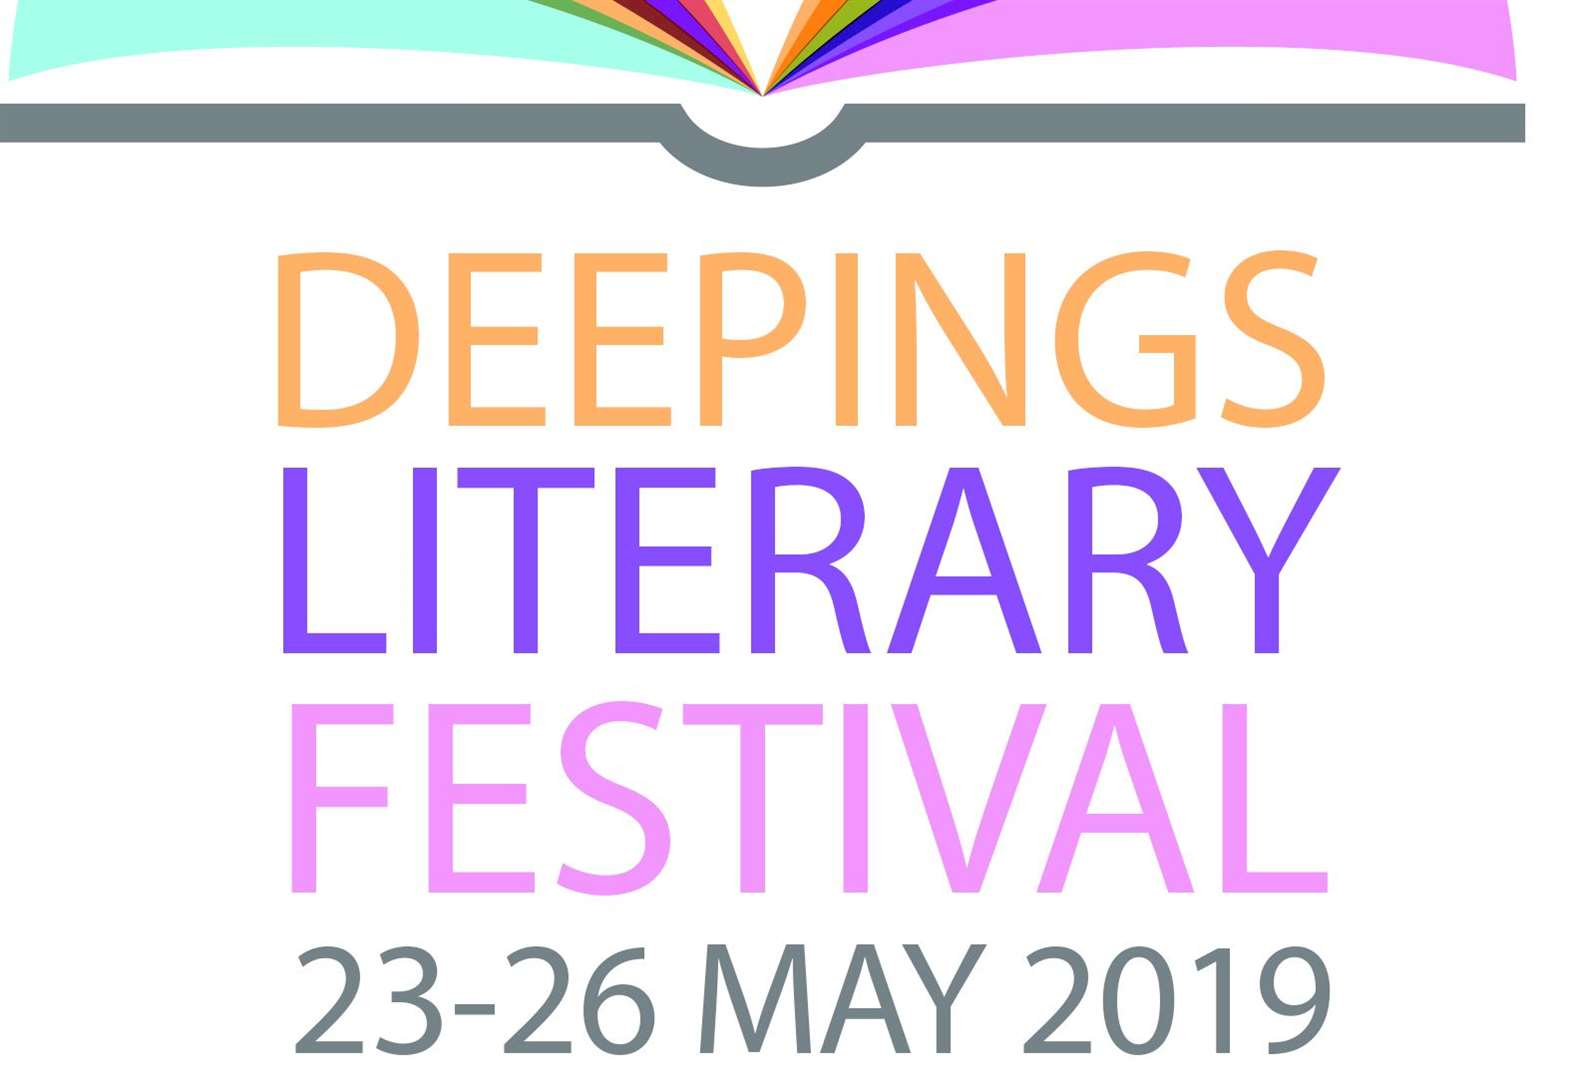 Deepings Literary Festival - all you need to know